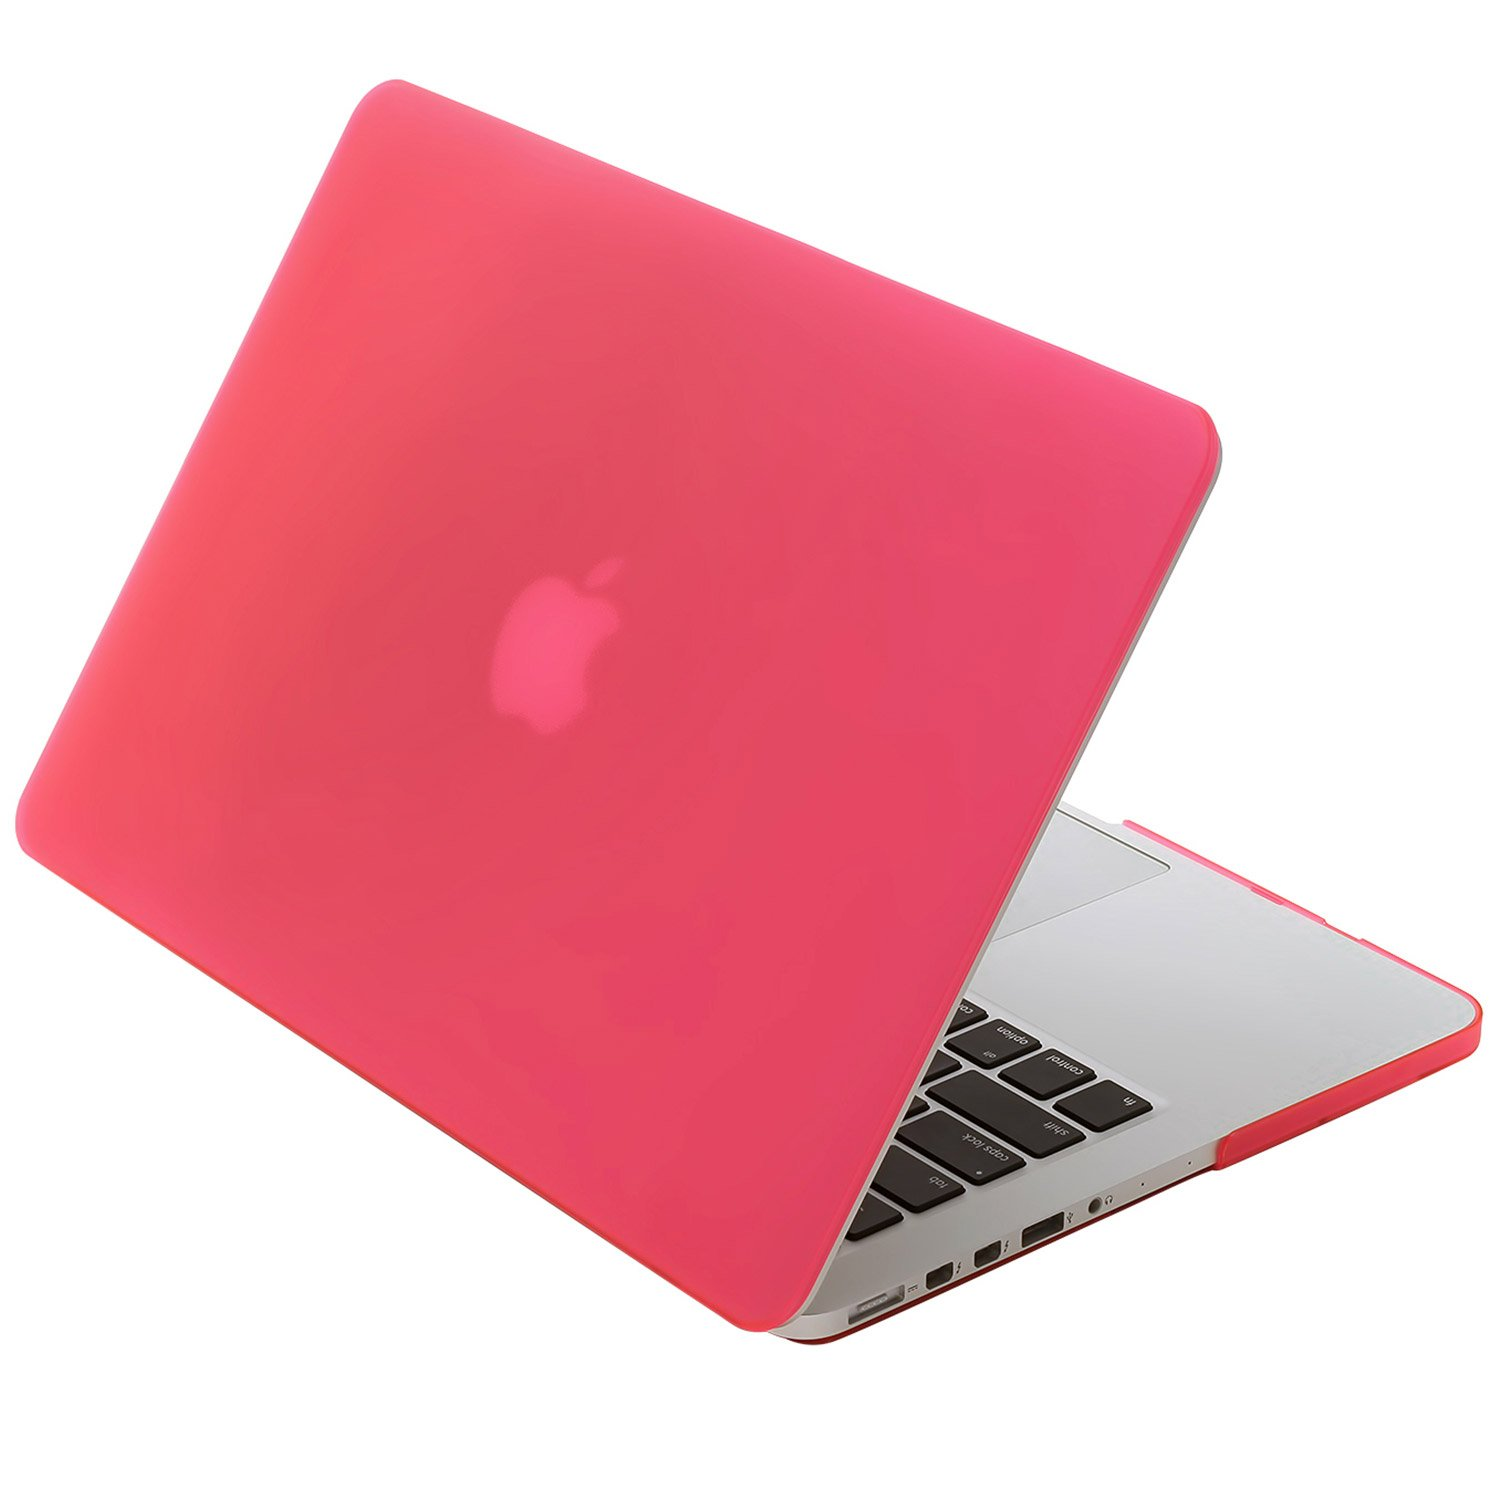 Aduro Macbook Pro 15 SoftTouch Cover with Matching Silicone Keyboard Cover